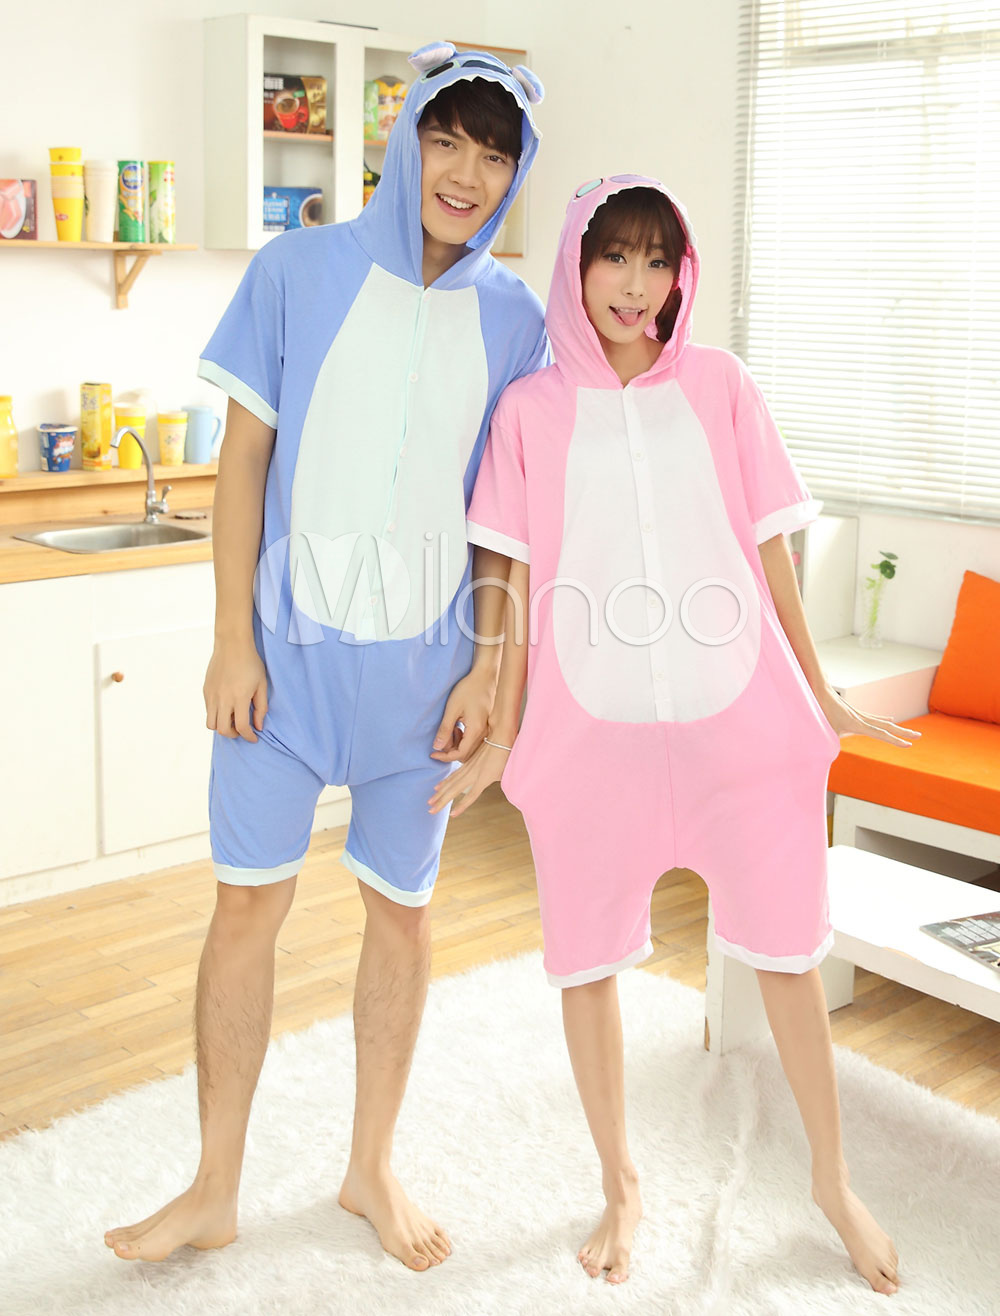 Kigurumi Pajama Stitch Onesie Cotton Short Sleeve Anime Sleepwear For Adult Halloween